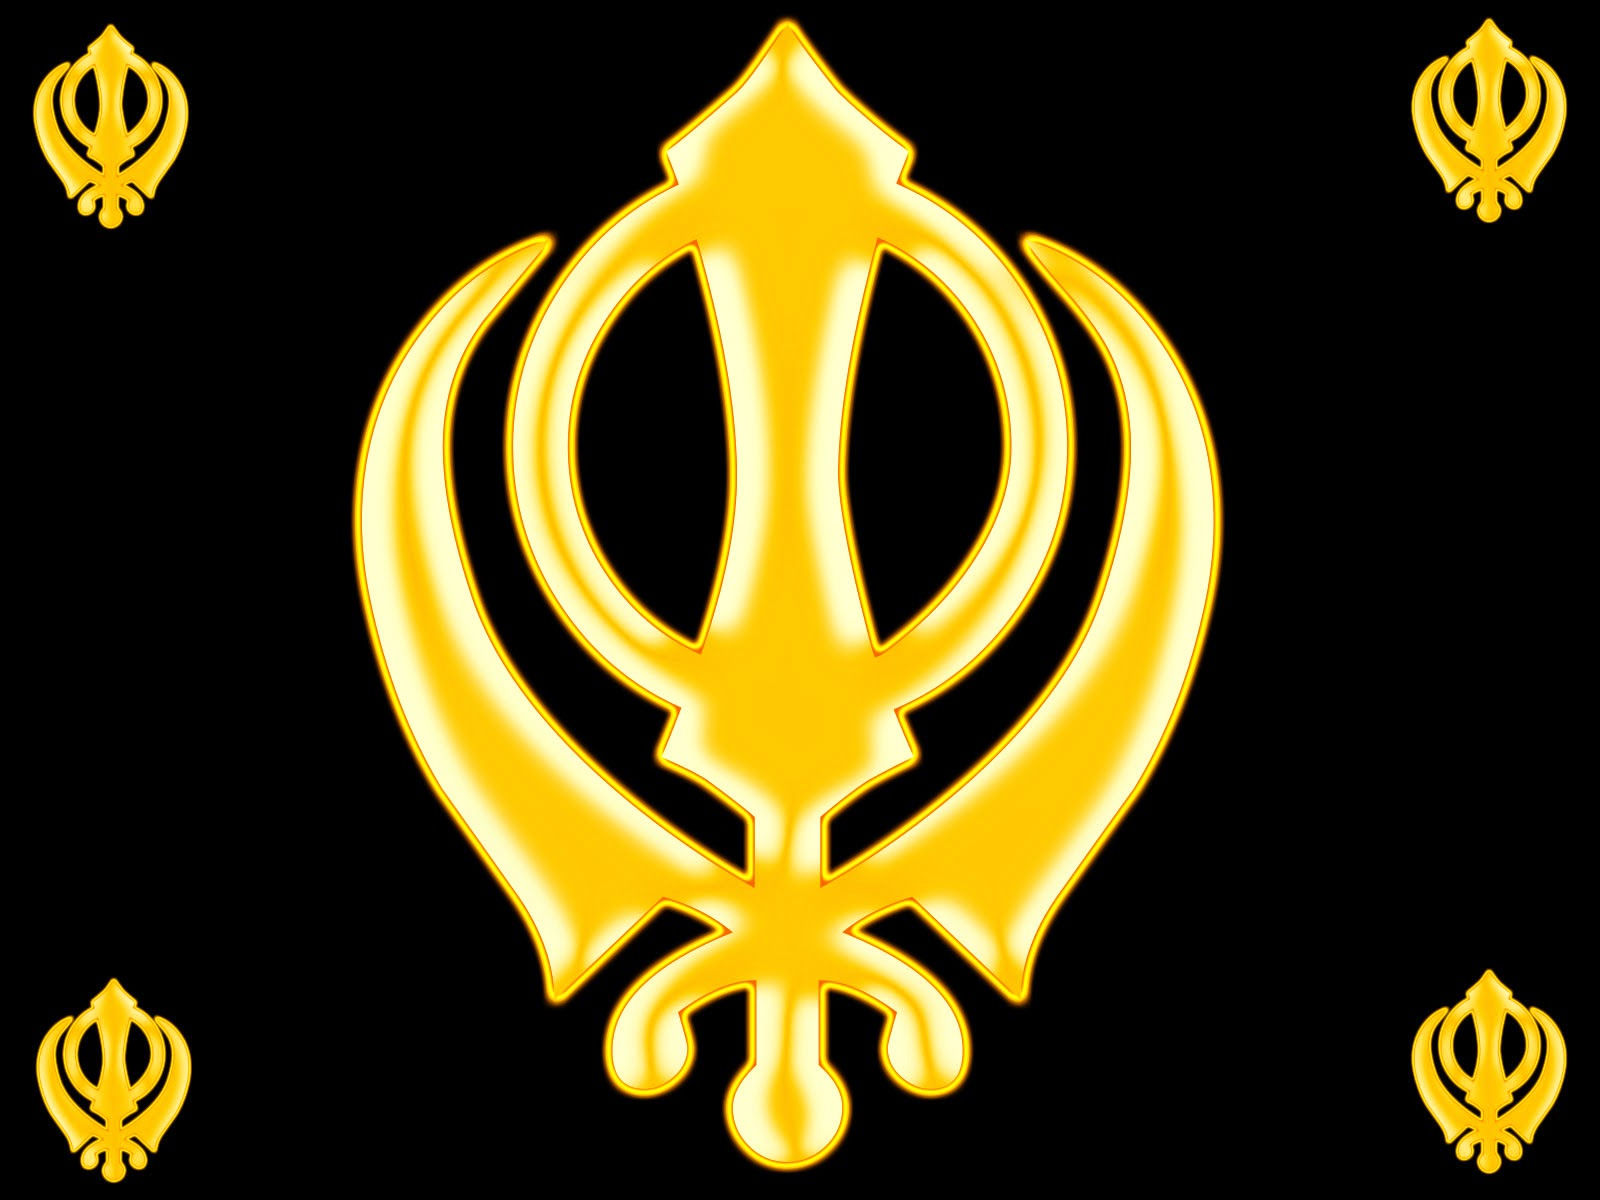 Khanda 3d Wallpapers Golden Khanda Over Black Background Wallpaper 2014